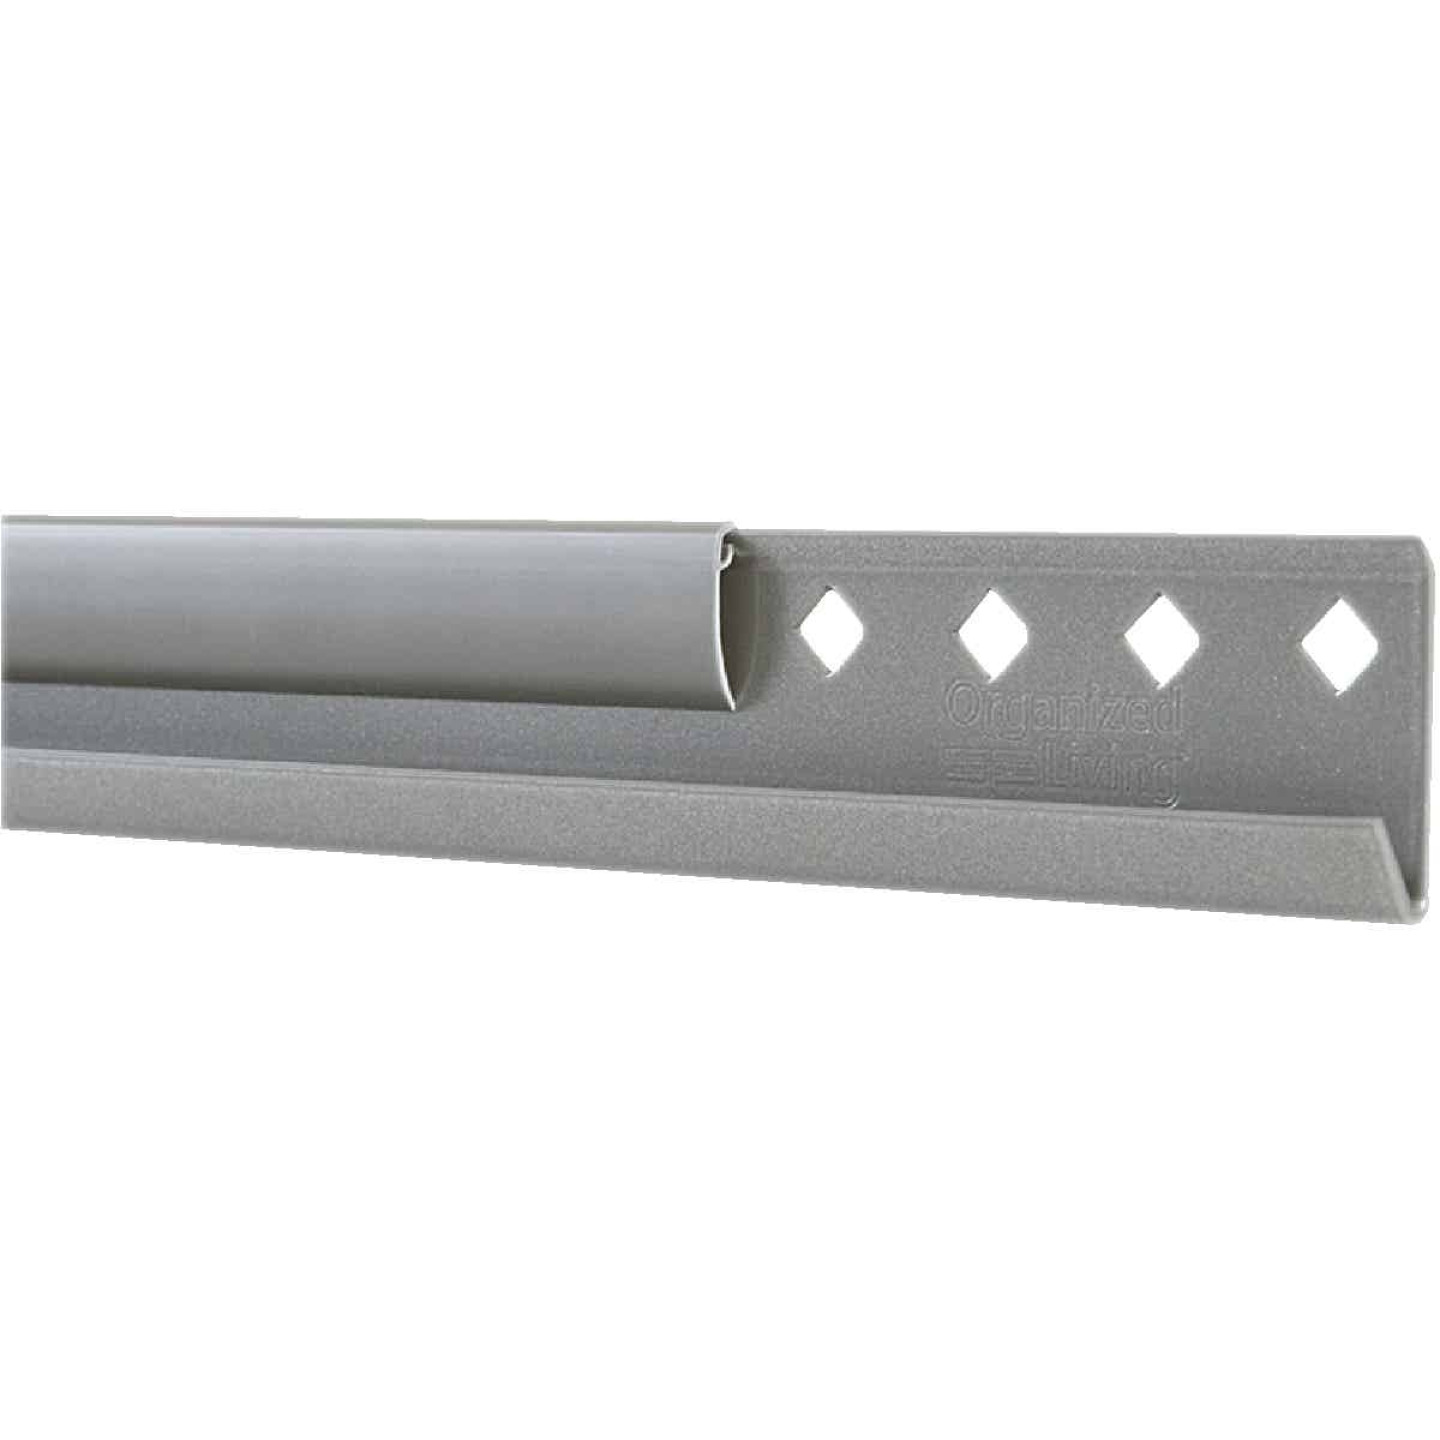 FreedomRail 42 In. Nickel Horizontal Hanging Rail with Cover Image 1